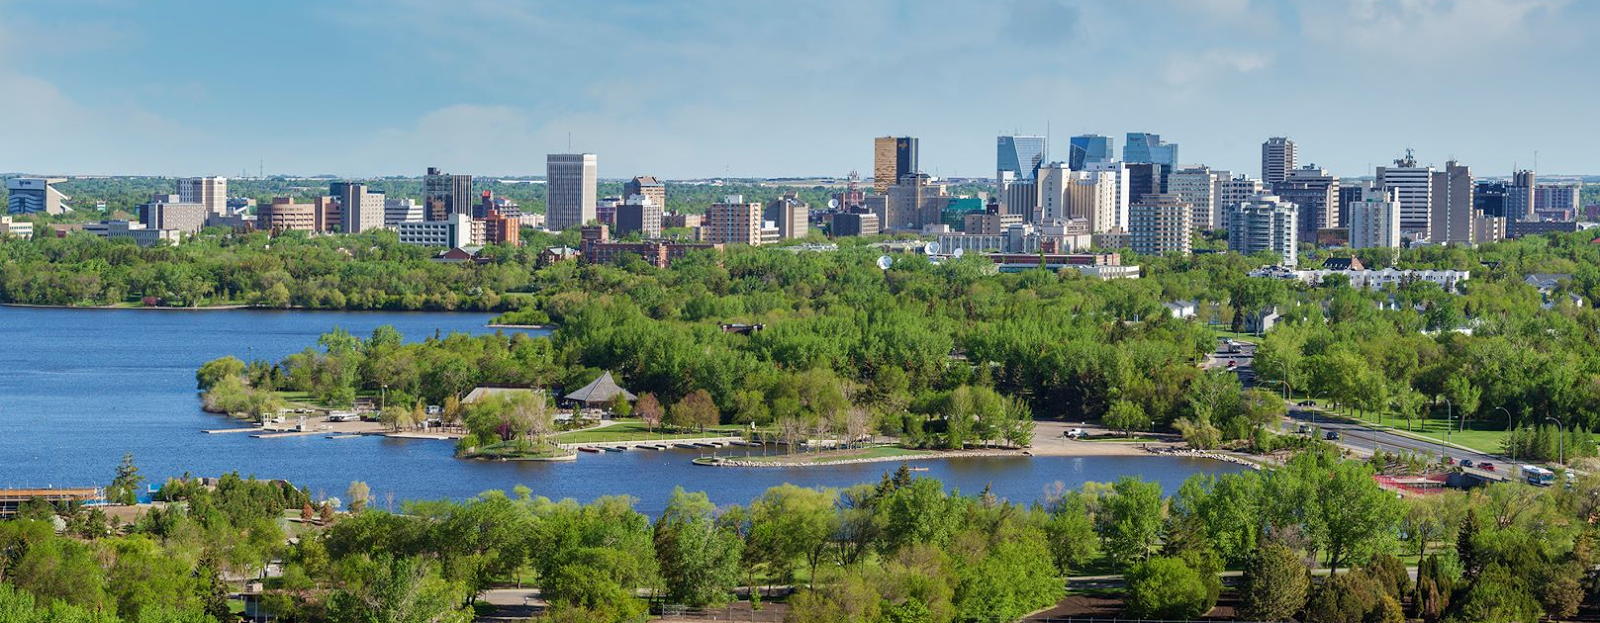 Regina City | The Capital of Saskatchewan Province